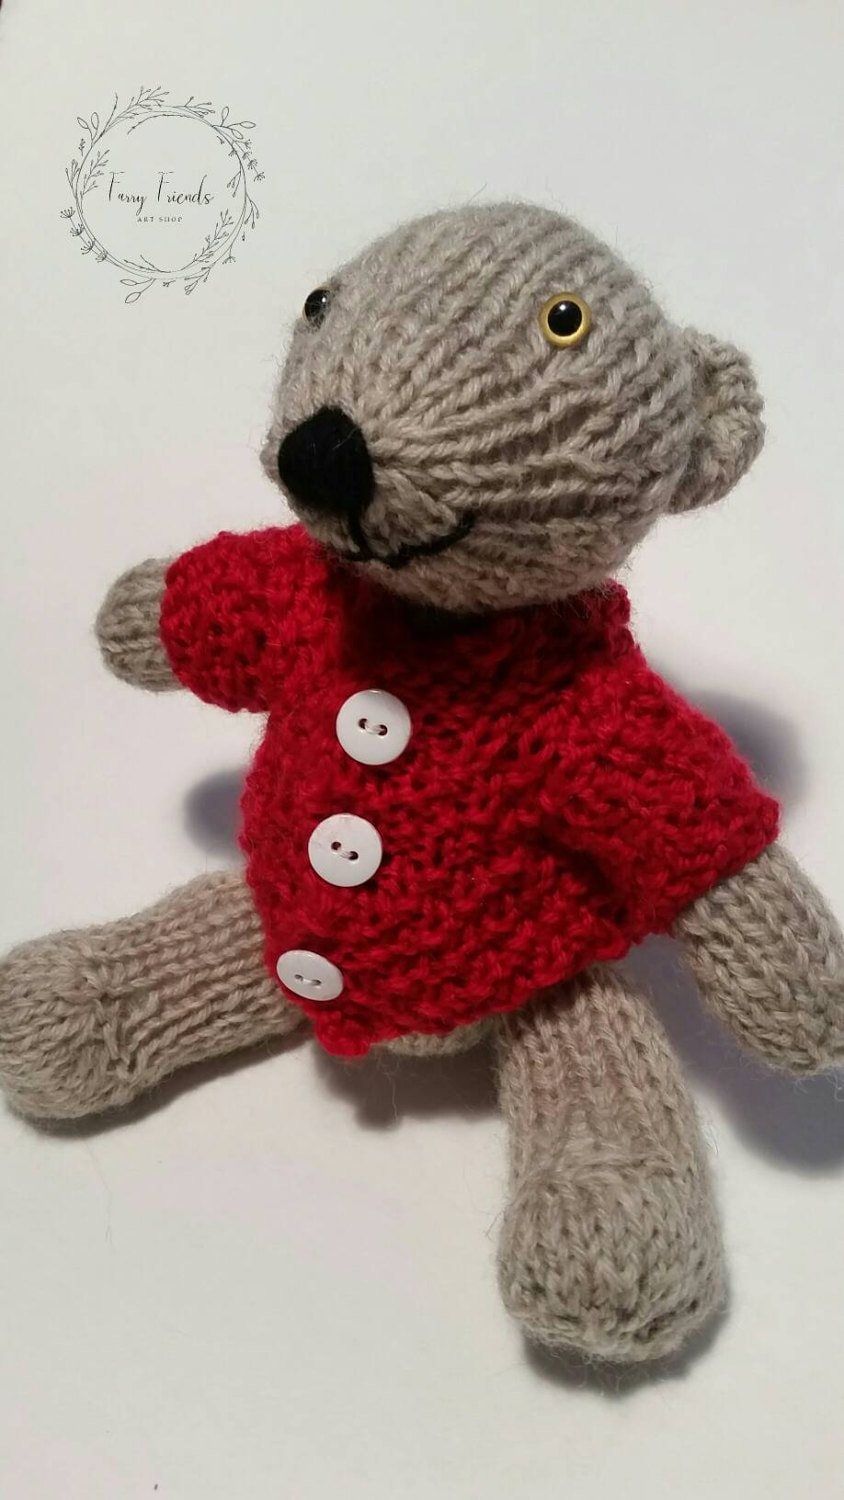 Tommy The Hand Knit Wool Stuffed Teddy Bear With Red Sweater